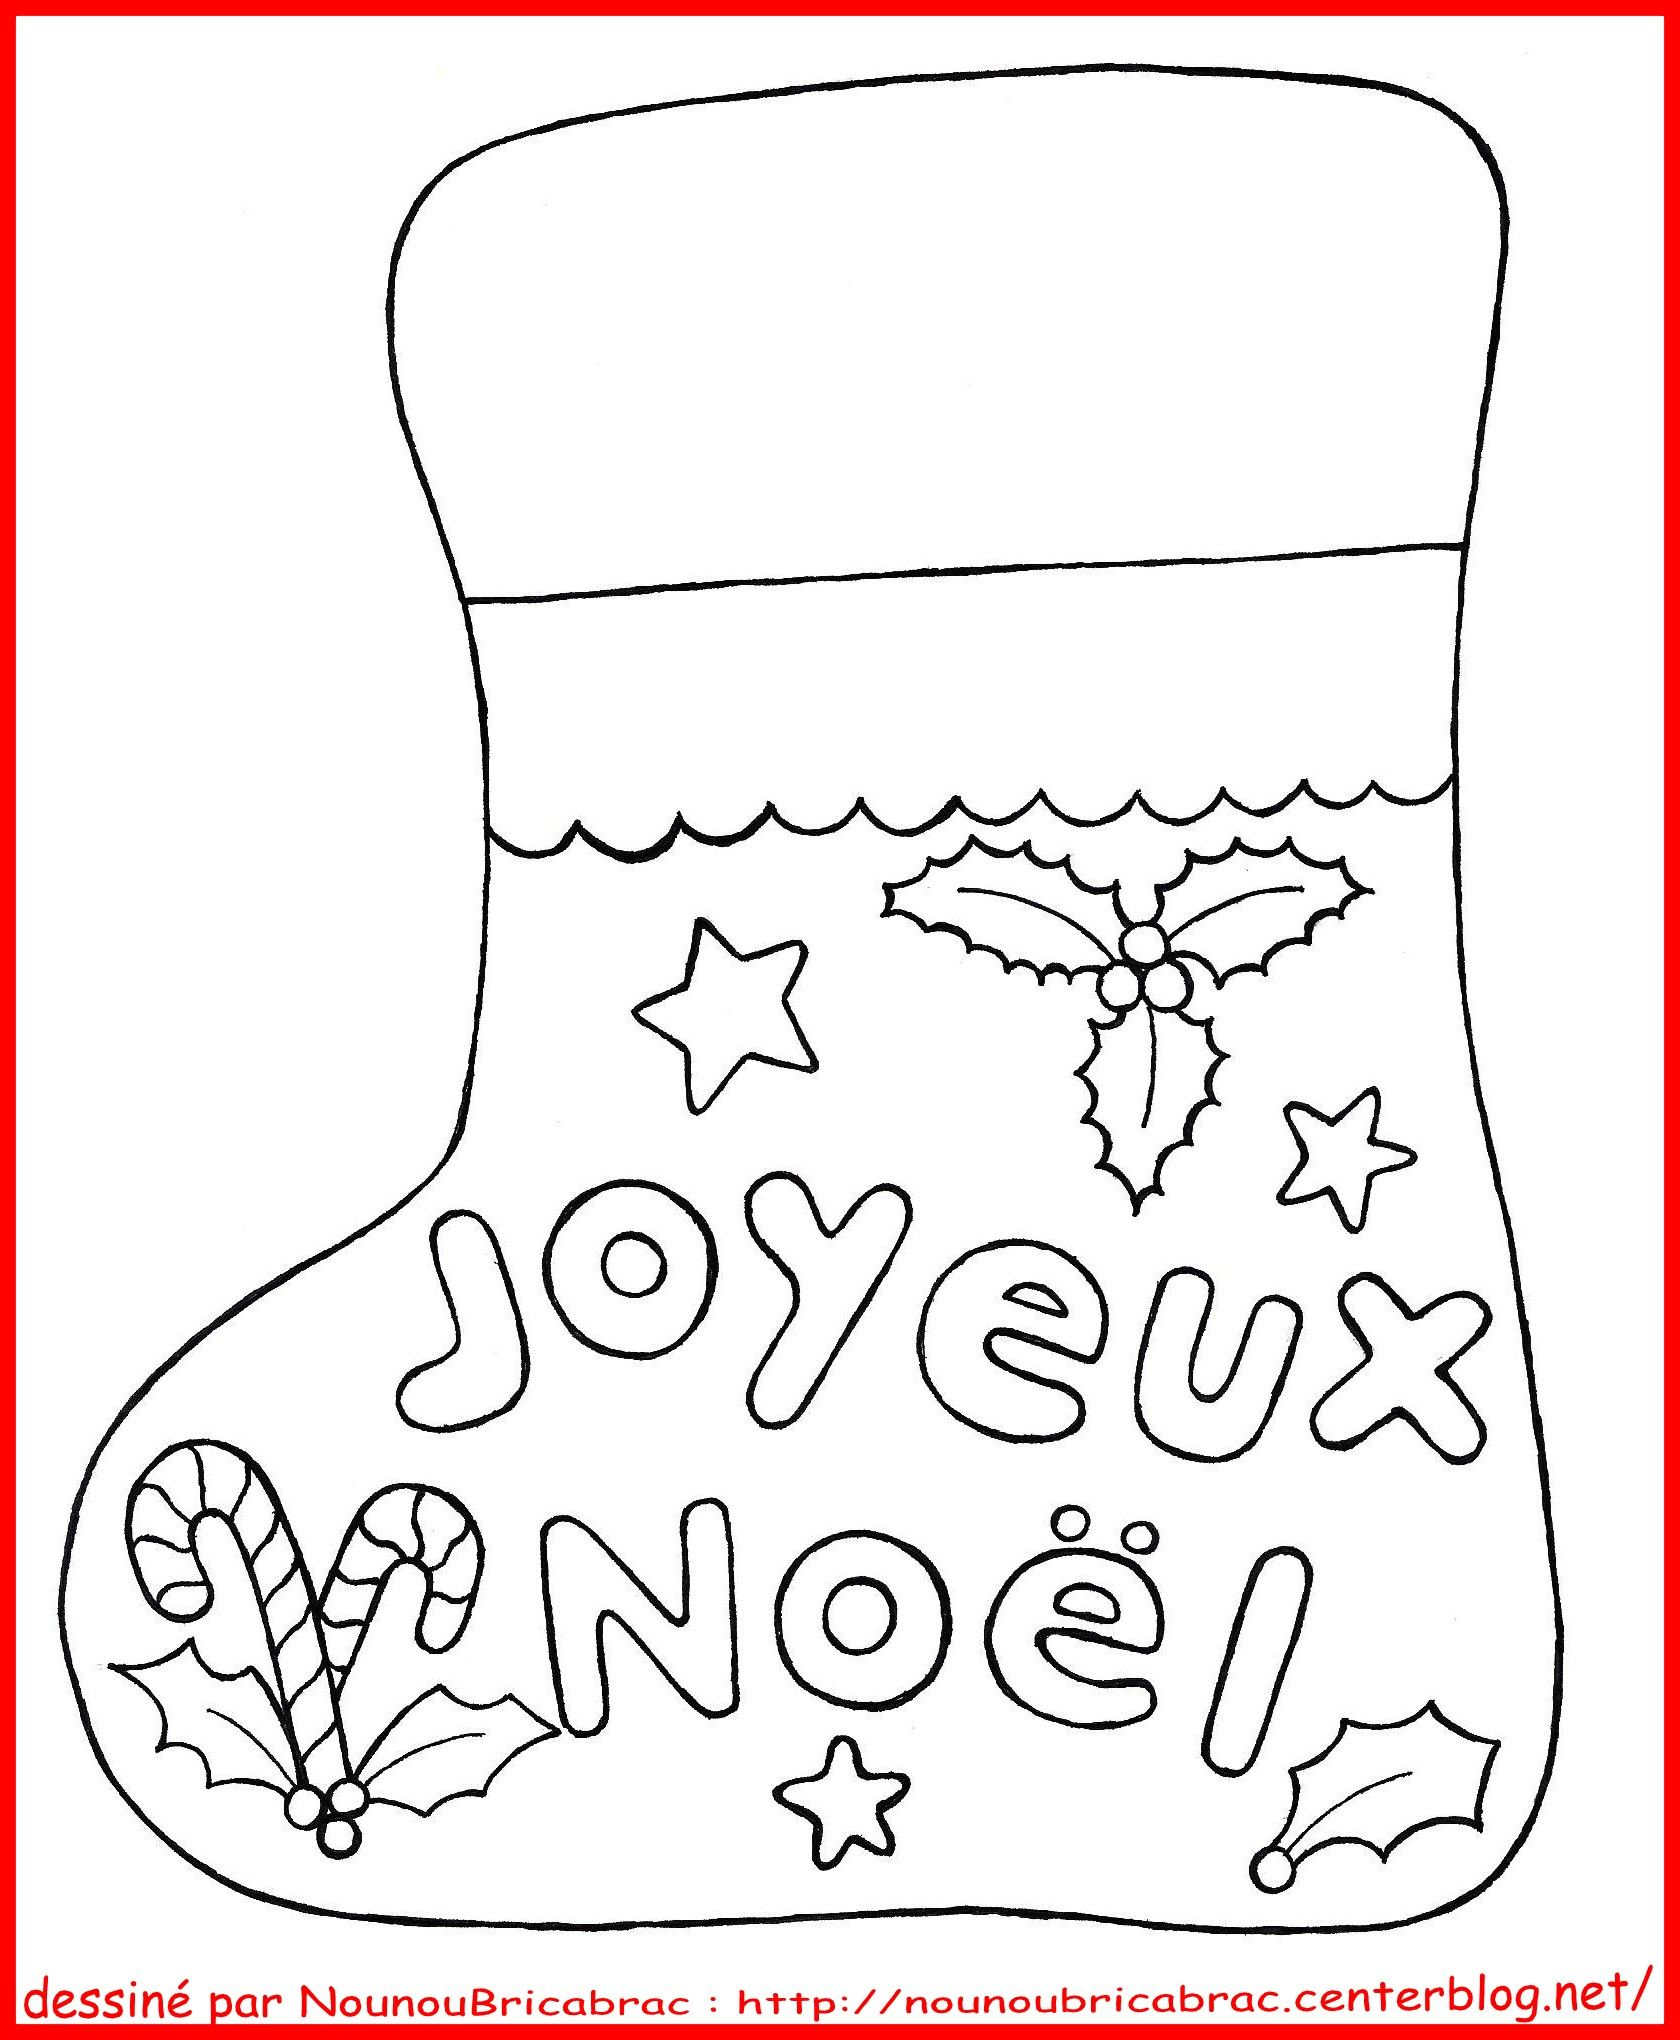 coloriage joyeux noel recherche google noyeux jo l. Black Bedroom Furniture Sets. Home Design Ideas